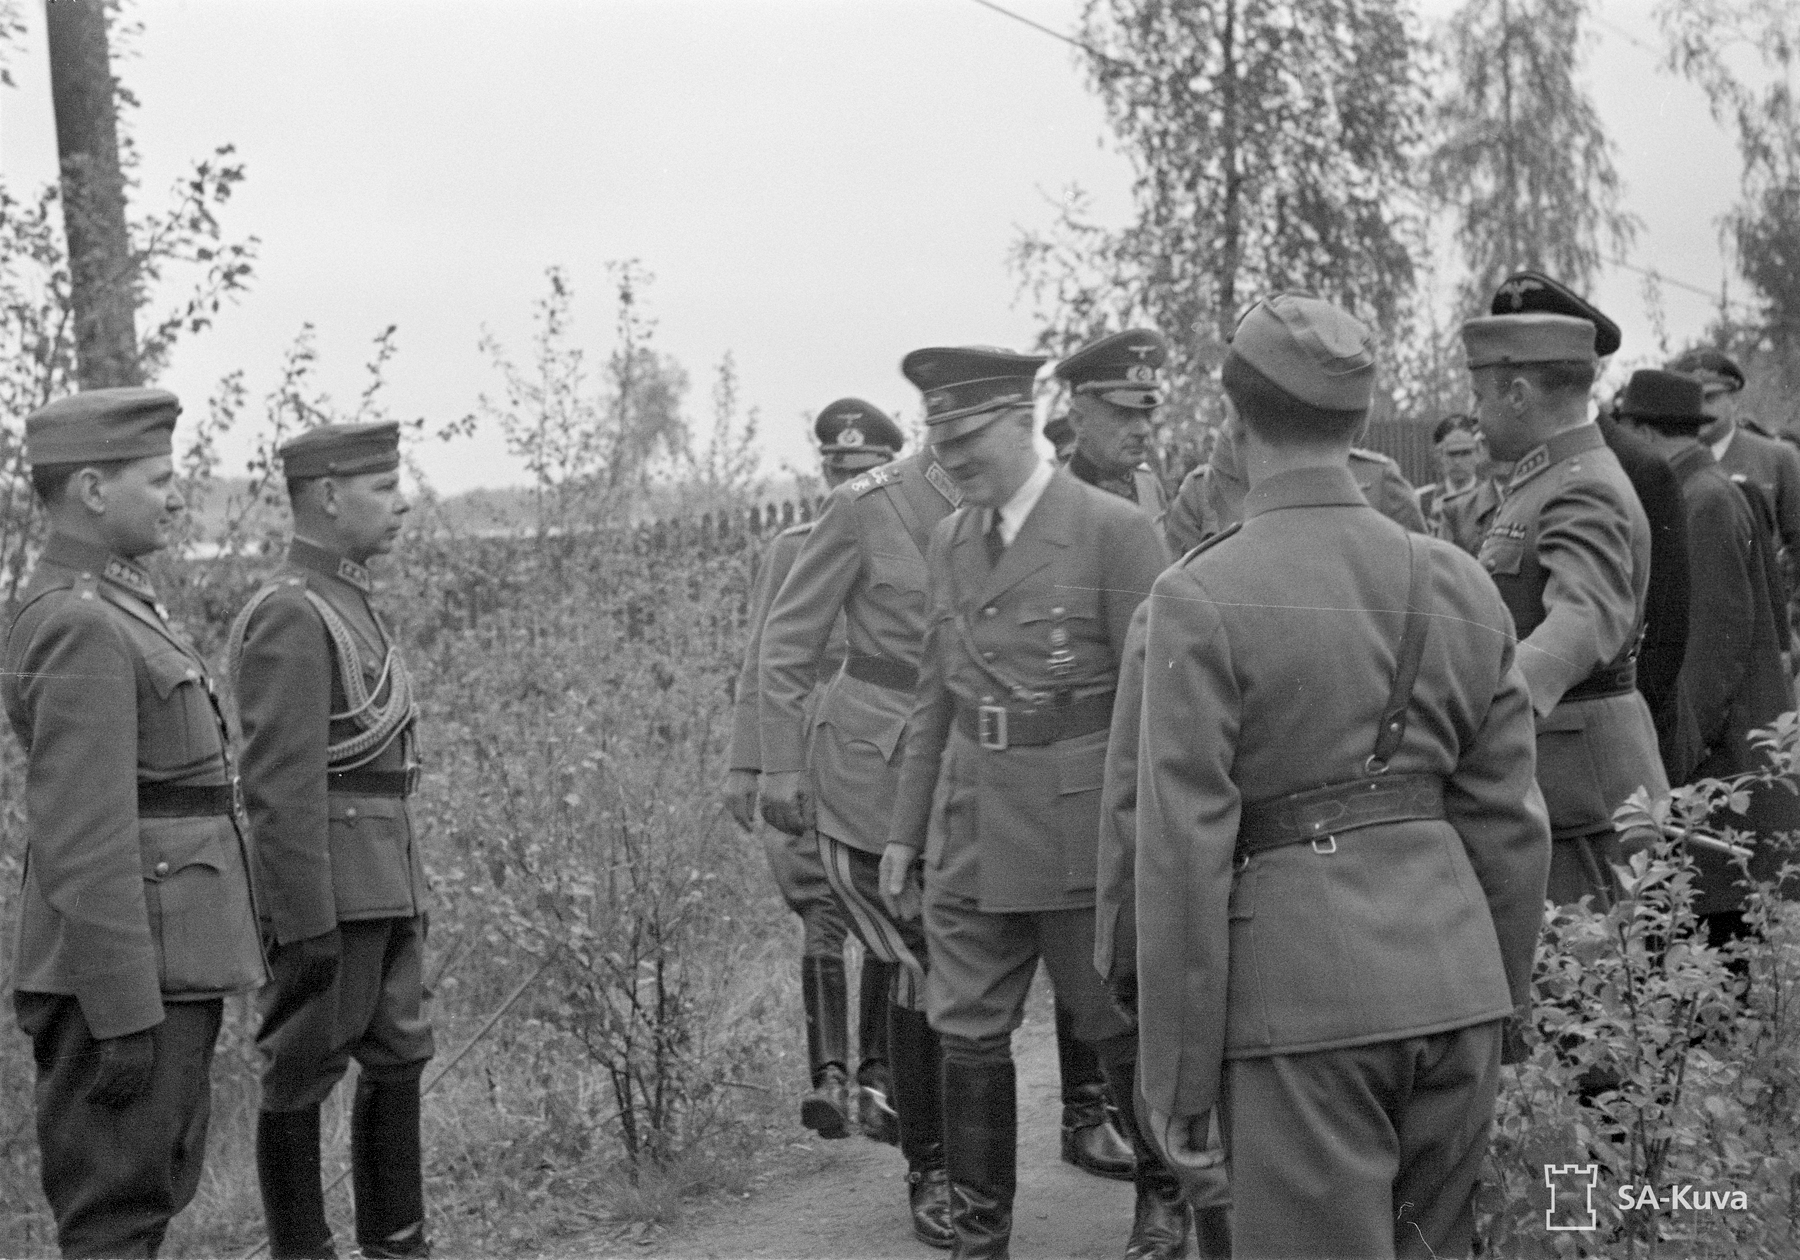 Hitler greets officers during his visit in Finland